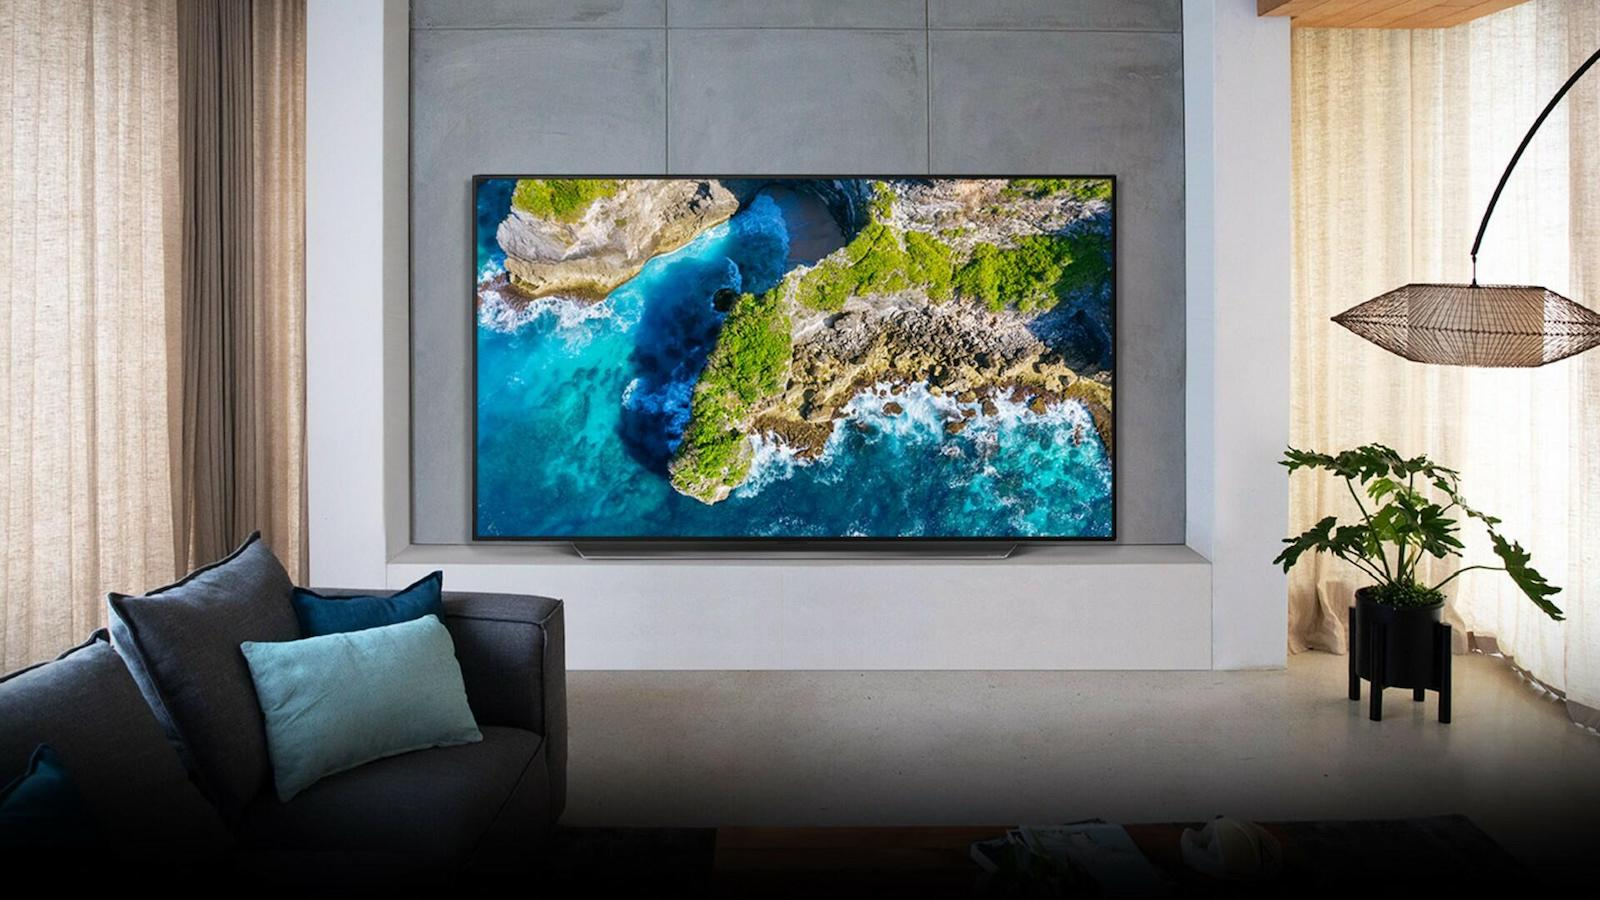 Sony XBR A8H Series OLED TV